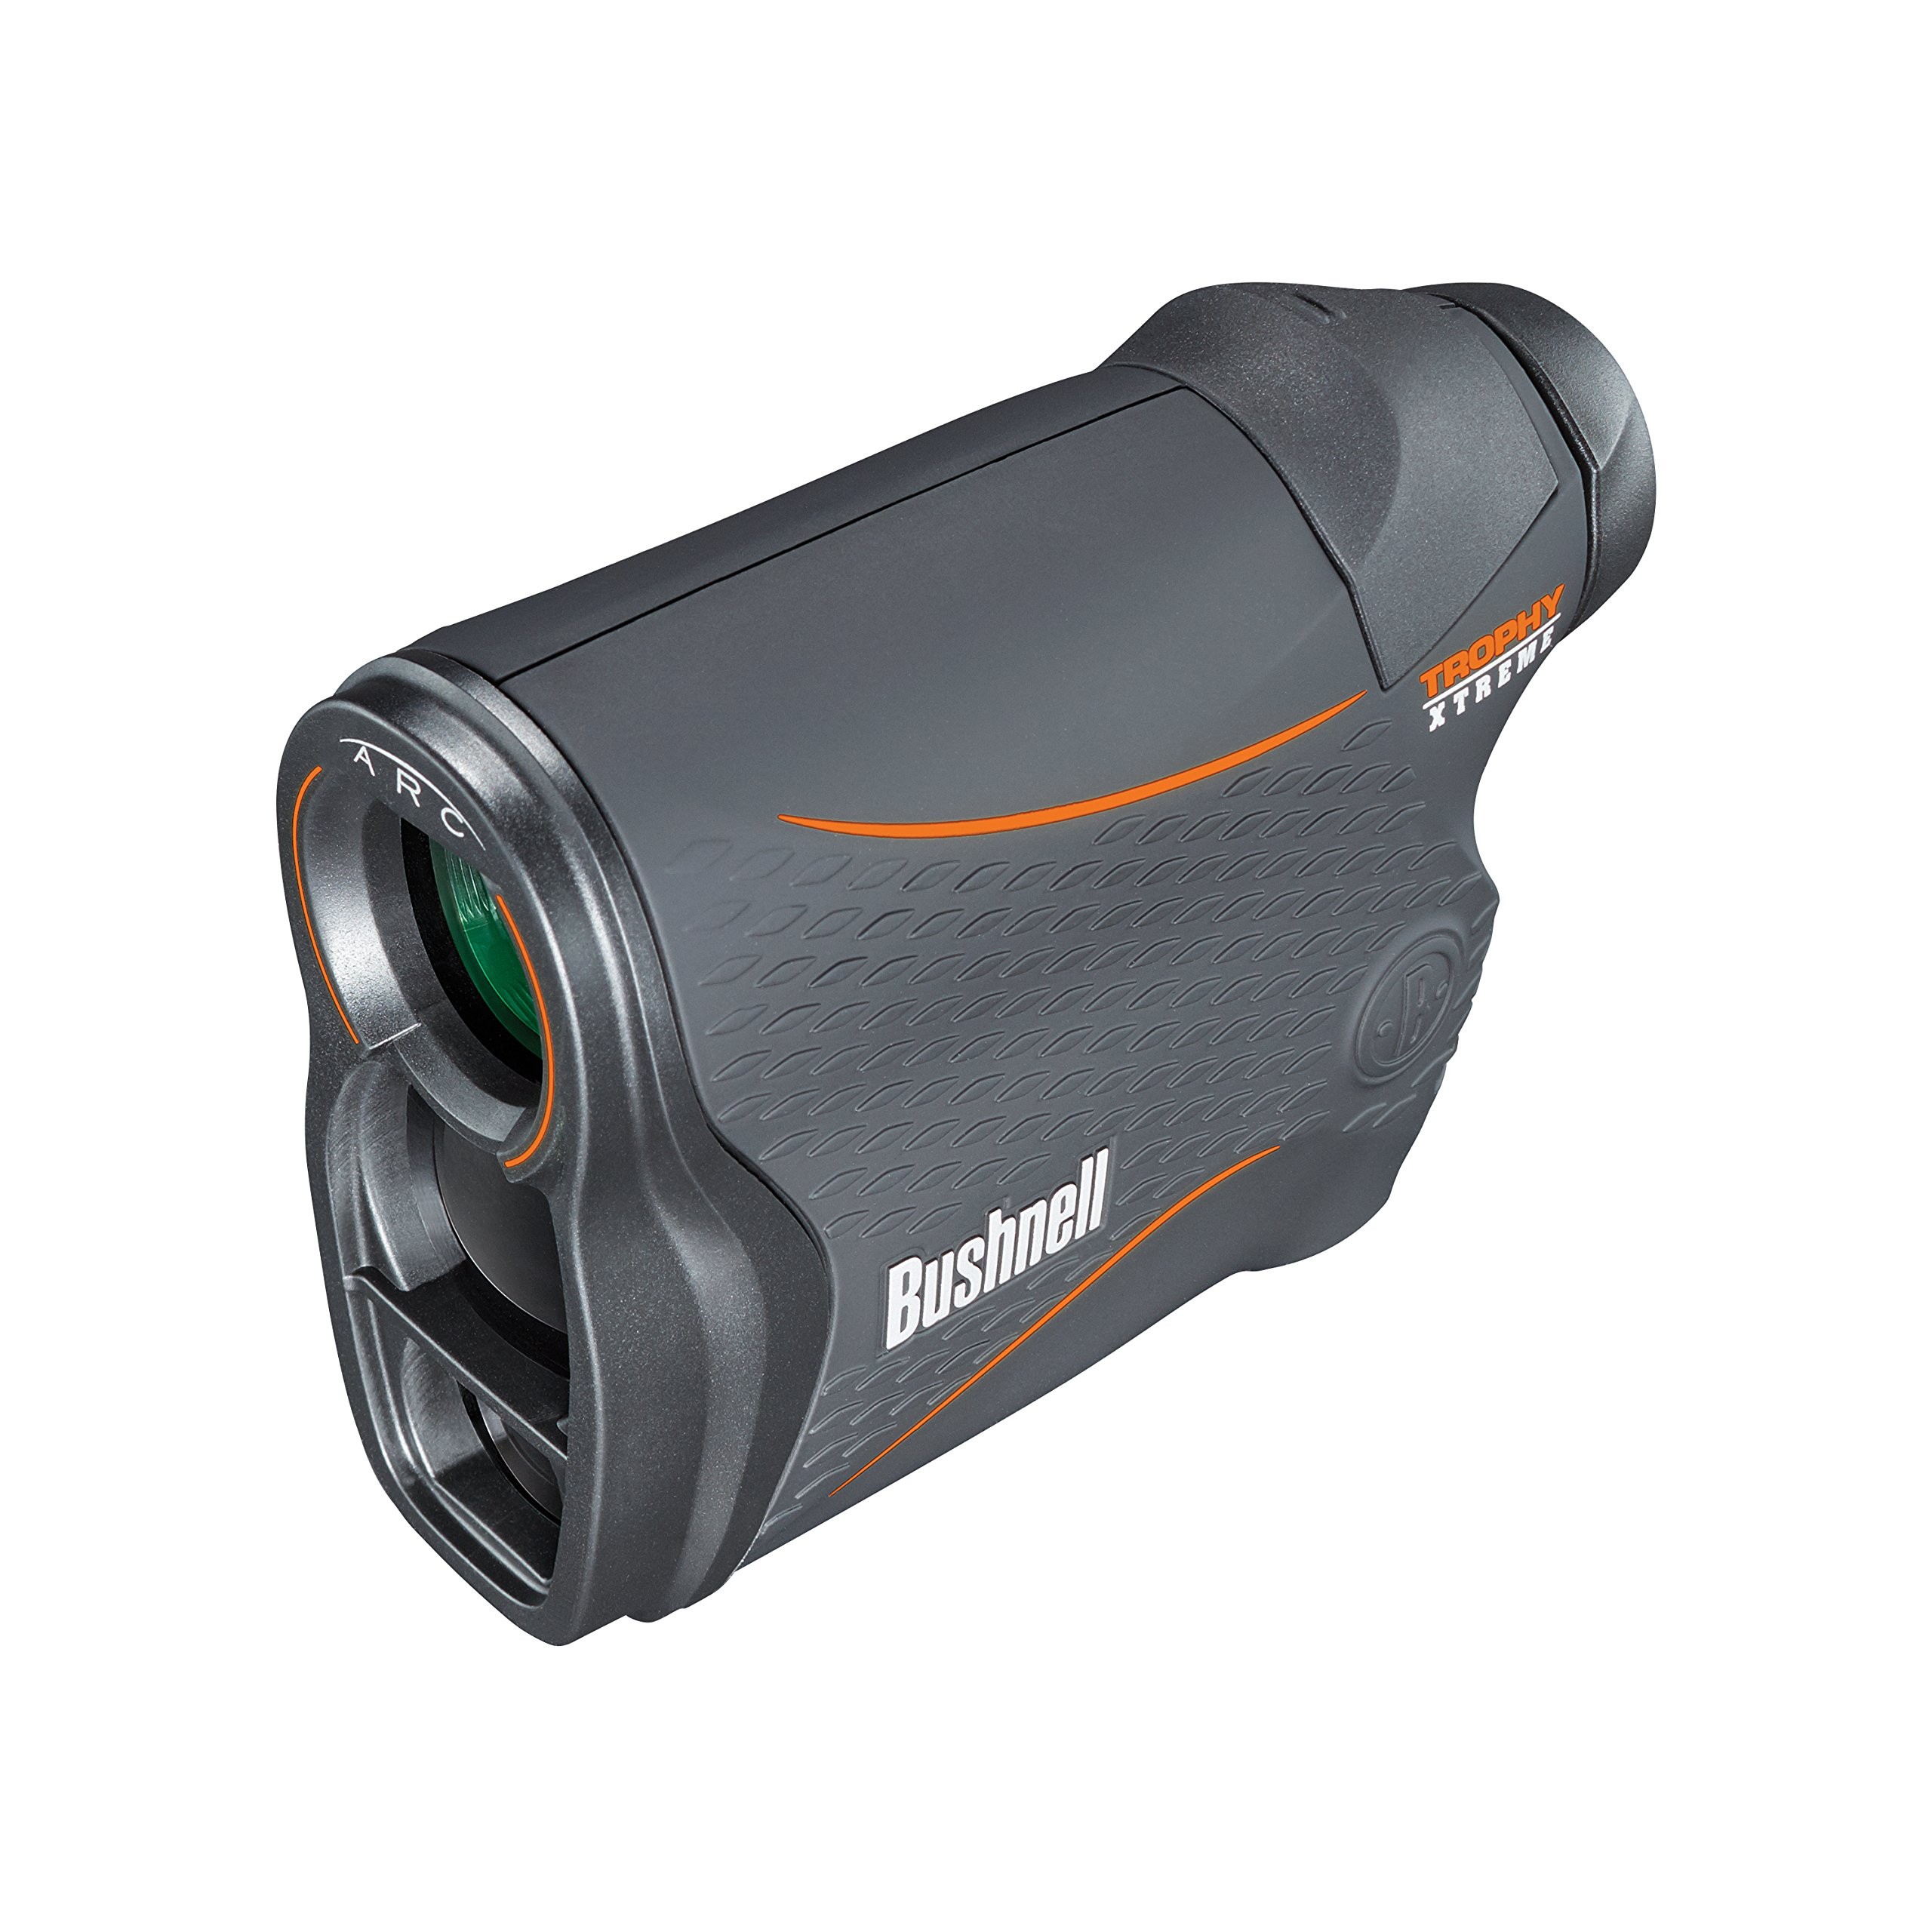 Bushnell Trophy Xtreme Laser Rangefinder with Arc, Matte Black by Bushnell